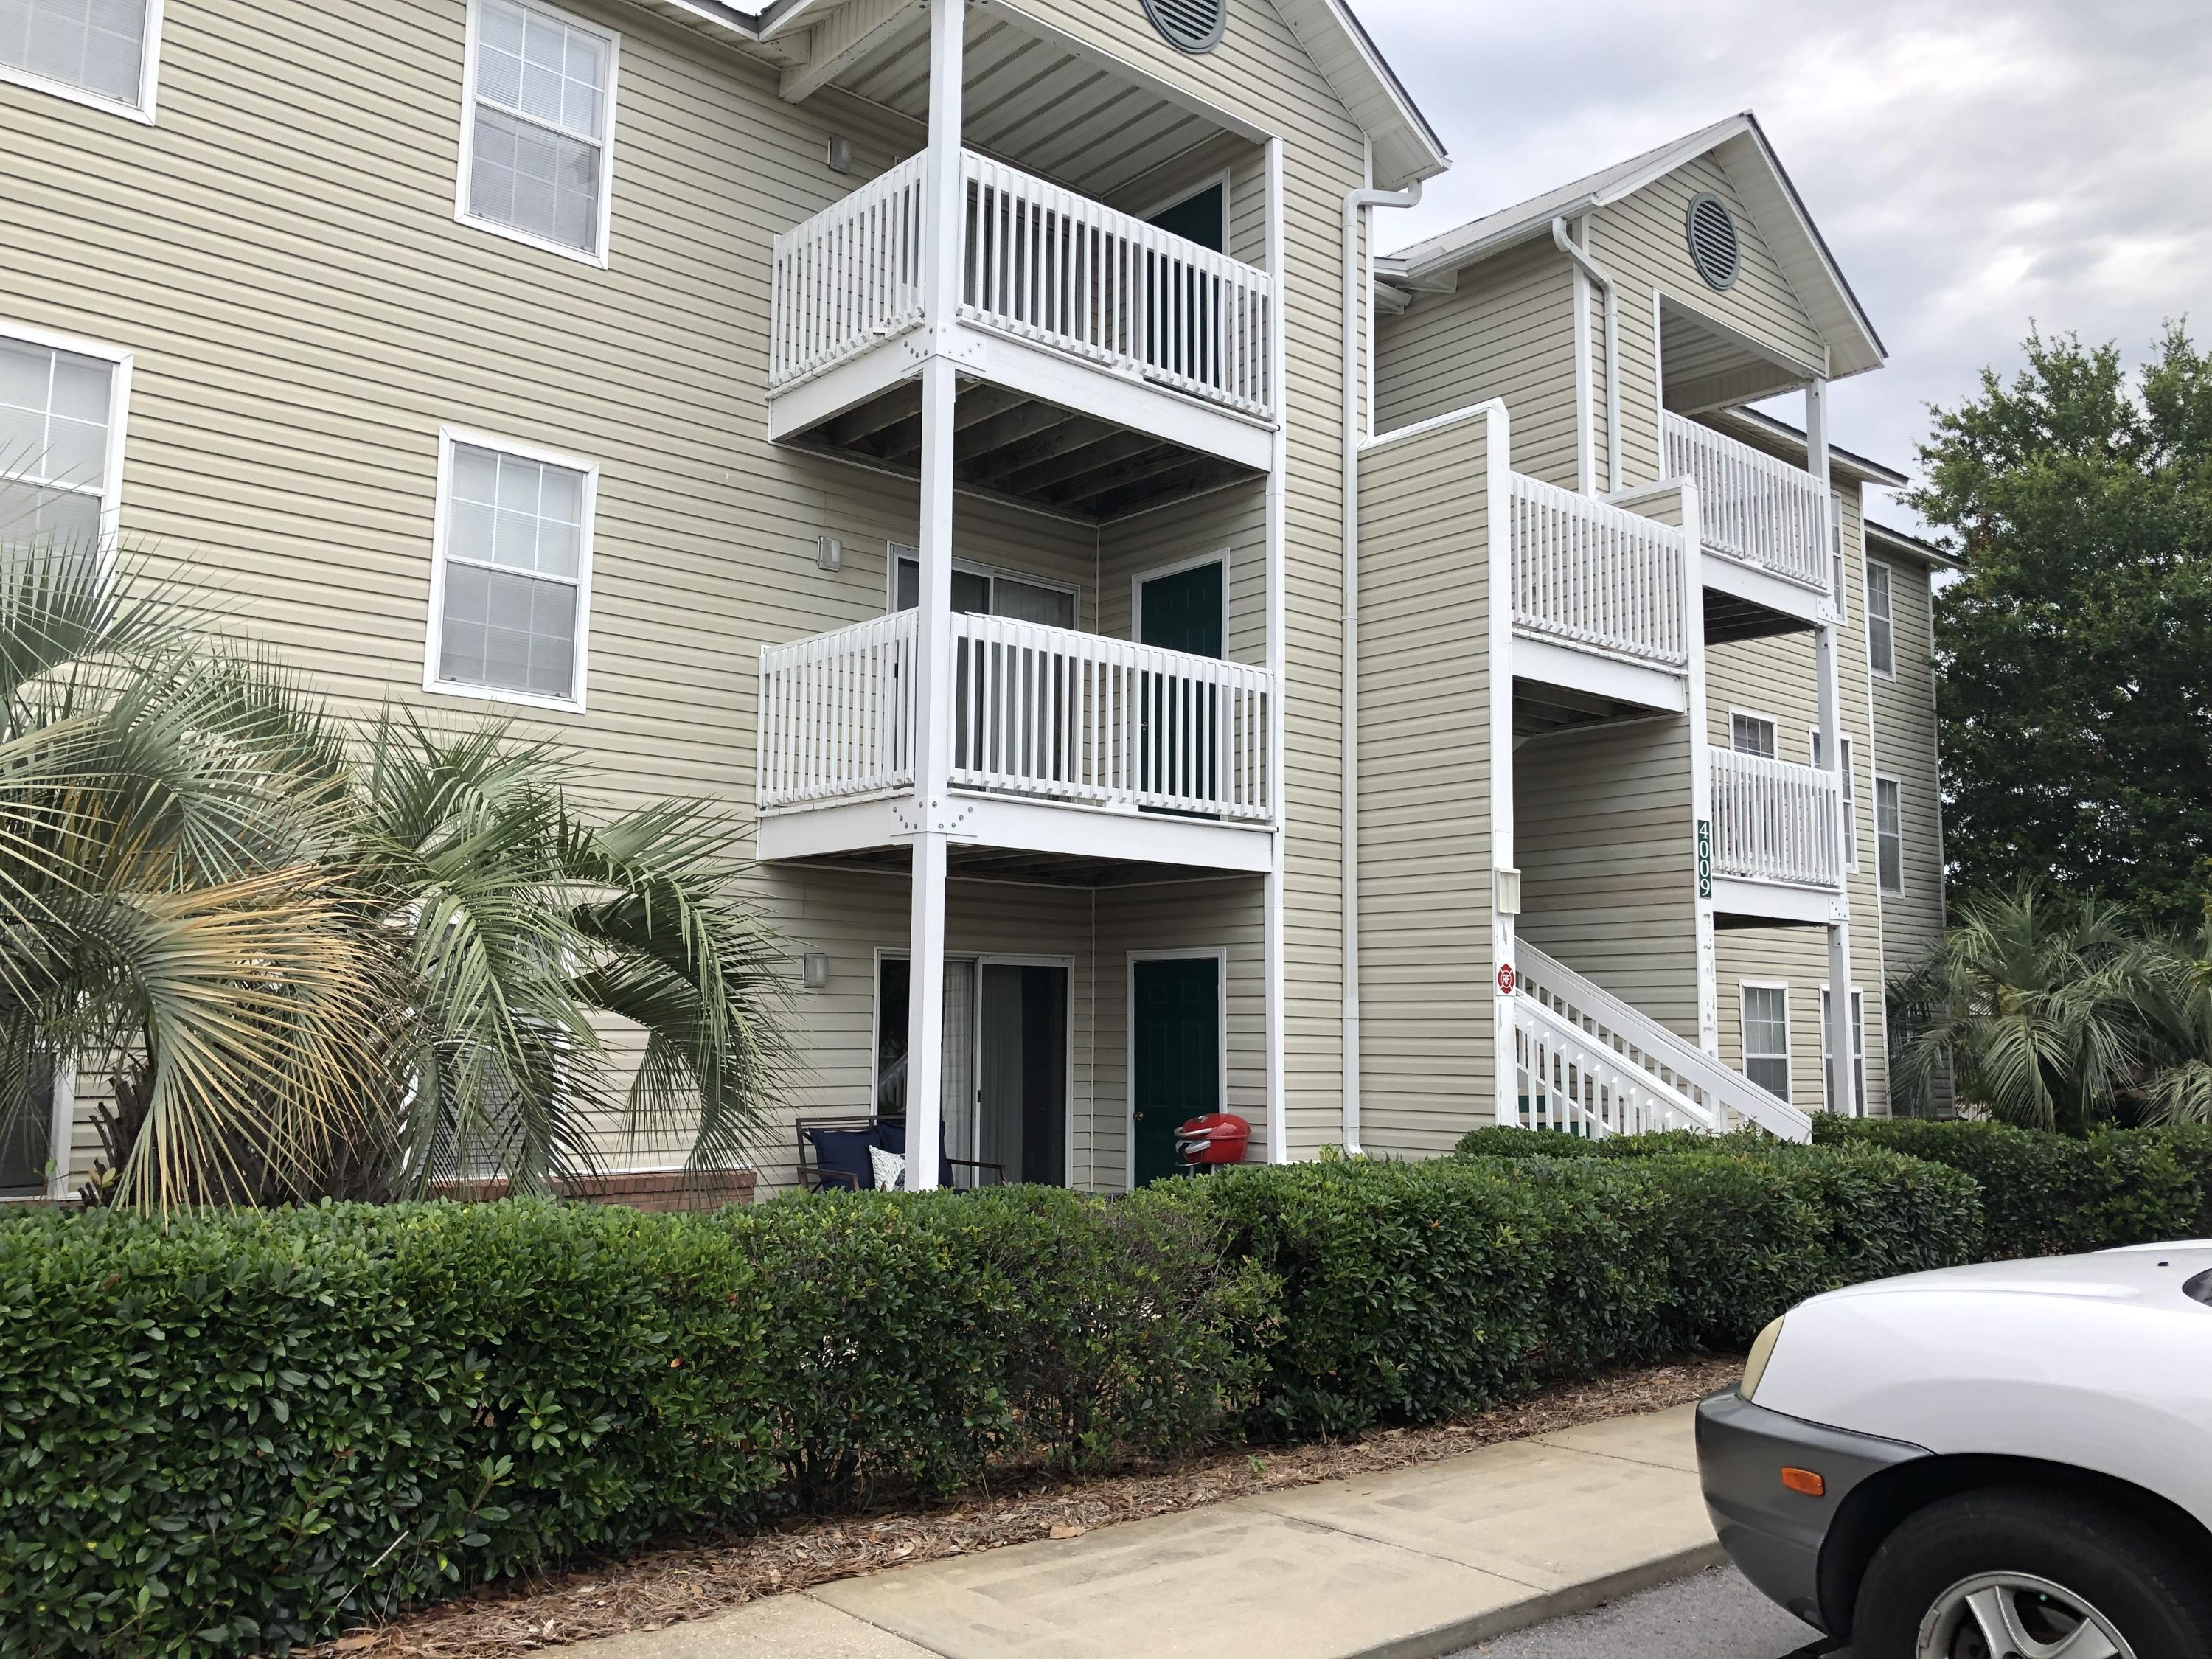 In the heart of Destin, Indian Lake features a pool, playground, and a fitness center. This 2 bedroom 2 bath third floor unit is central to everything in Destin and within about 10 to 15 minutes from Henderson Beach, Destin Commons and Destin Harbor with many great restaurants and attractions. Showings are by appointment with a 24 hour notice. This is a rental unit on a long term lease so we must work around tenant schedules.